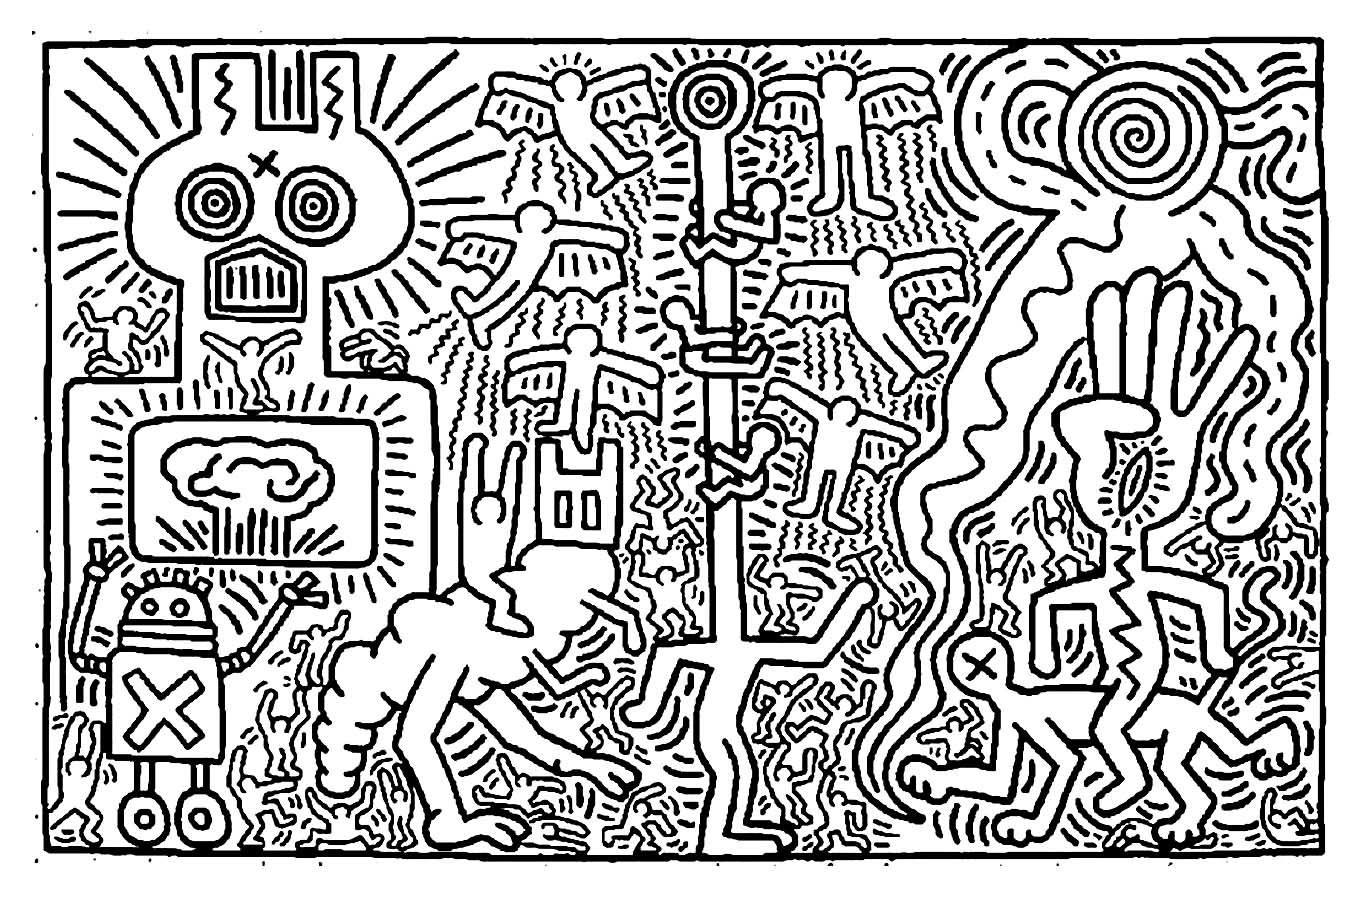 Keith Haring To Color For Kids - Keith Haring Coloring Pages über Keith Haring Malvorlagen